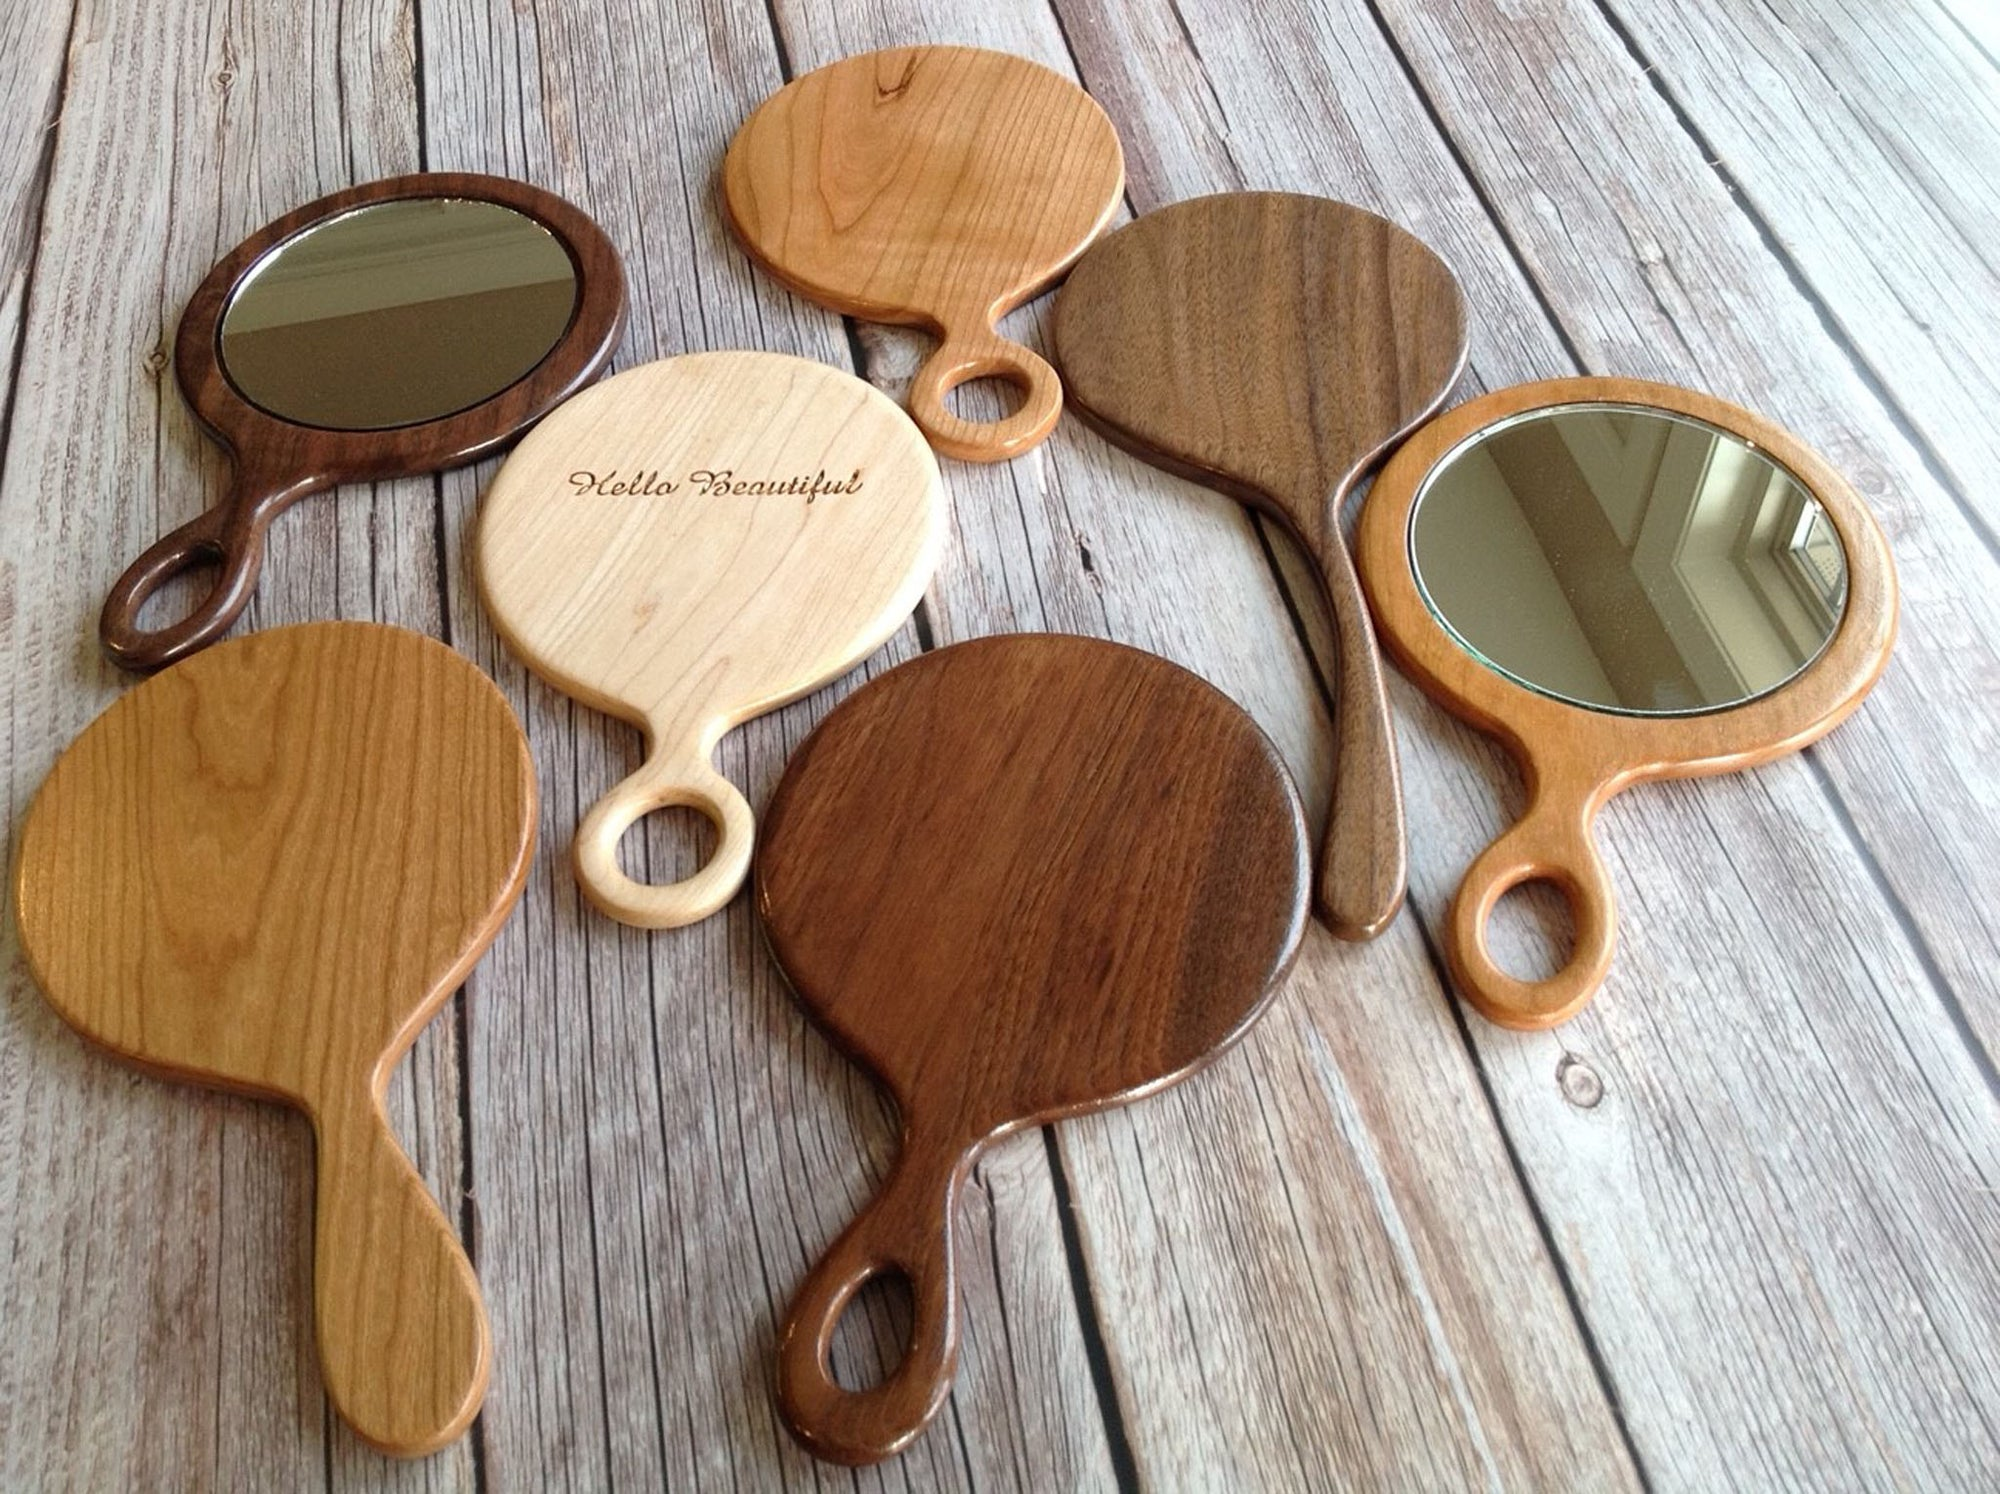 handcrafted hand mirrors vintage designs by Michael's Woodcrafts